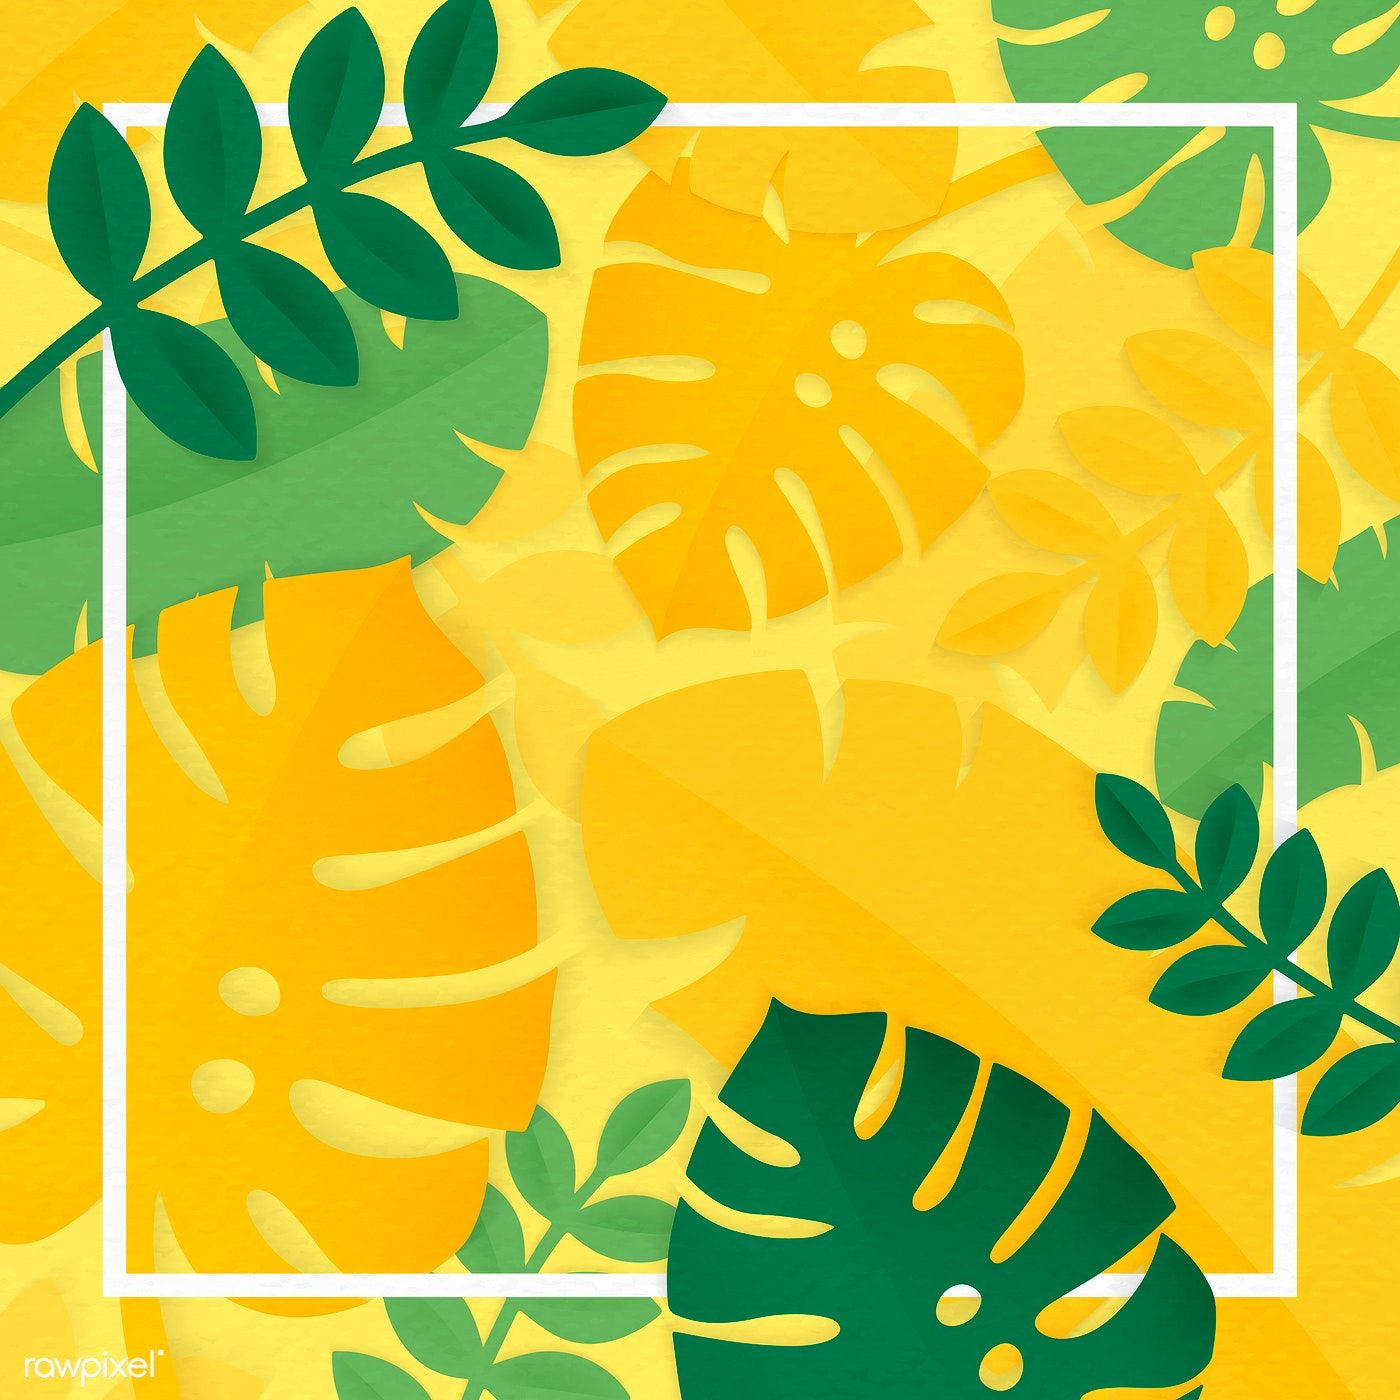 Download Premium Vector Of White Sqaure Frame On Yellow Tropical Leaves Vector Background Pattern Tropical Leaves Tropical Leaves Pattern Tropical flowers and leaves on yellow background vector image. yellow tropical leaves